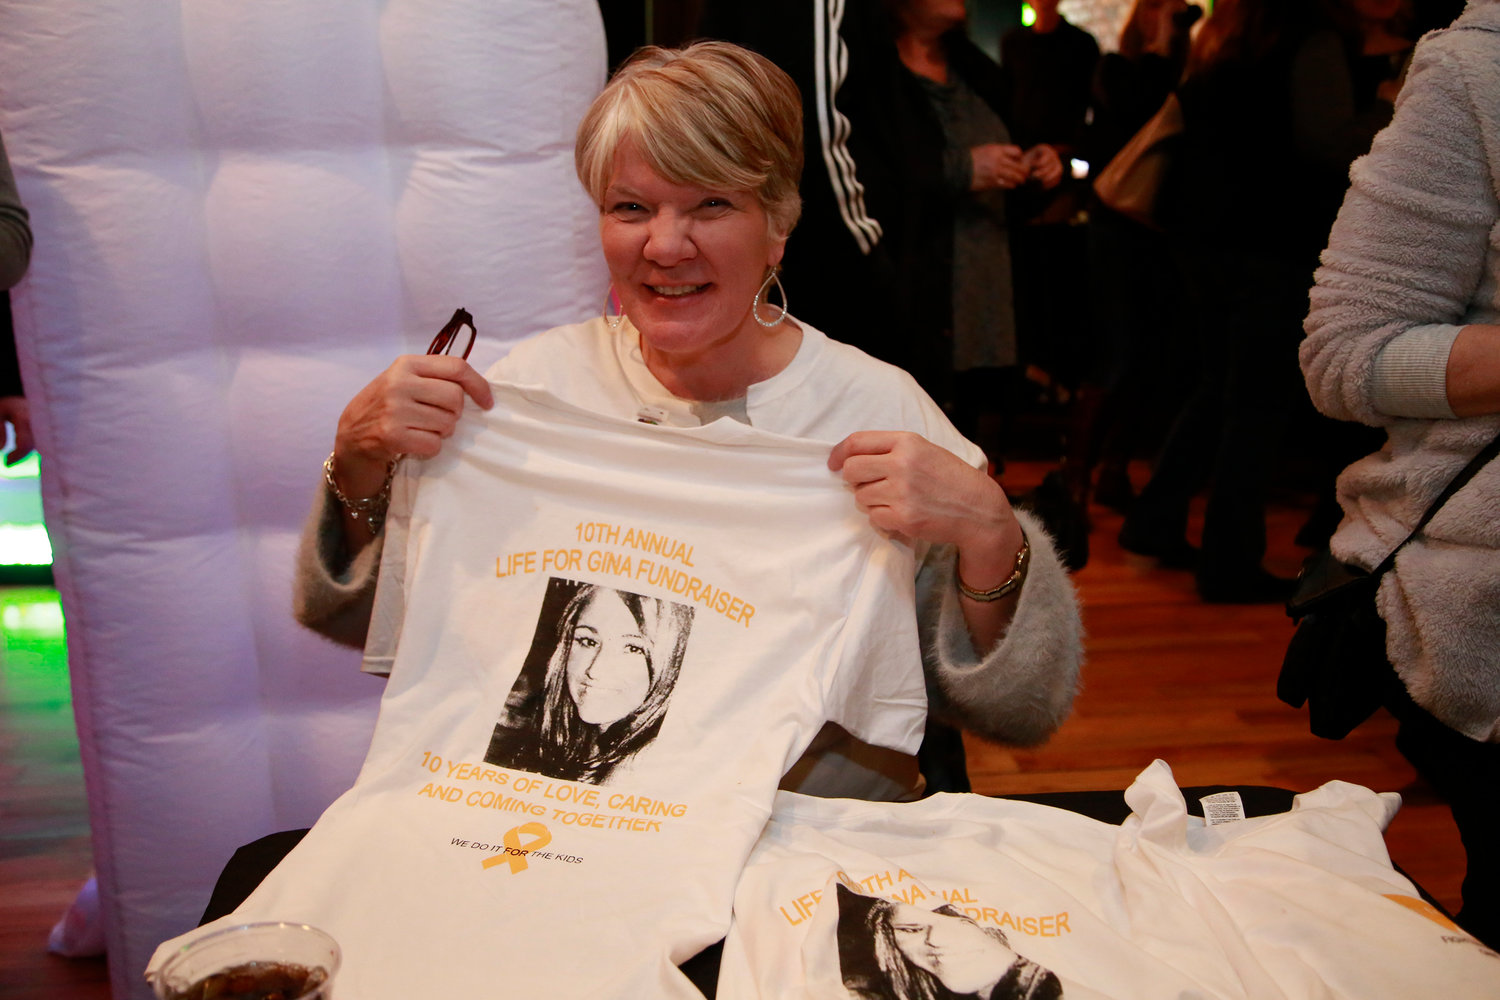 Irene Volk sold Gina T-shirts throughout the afternoon.